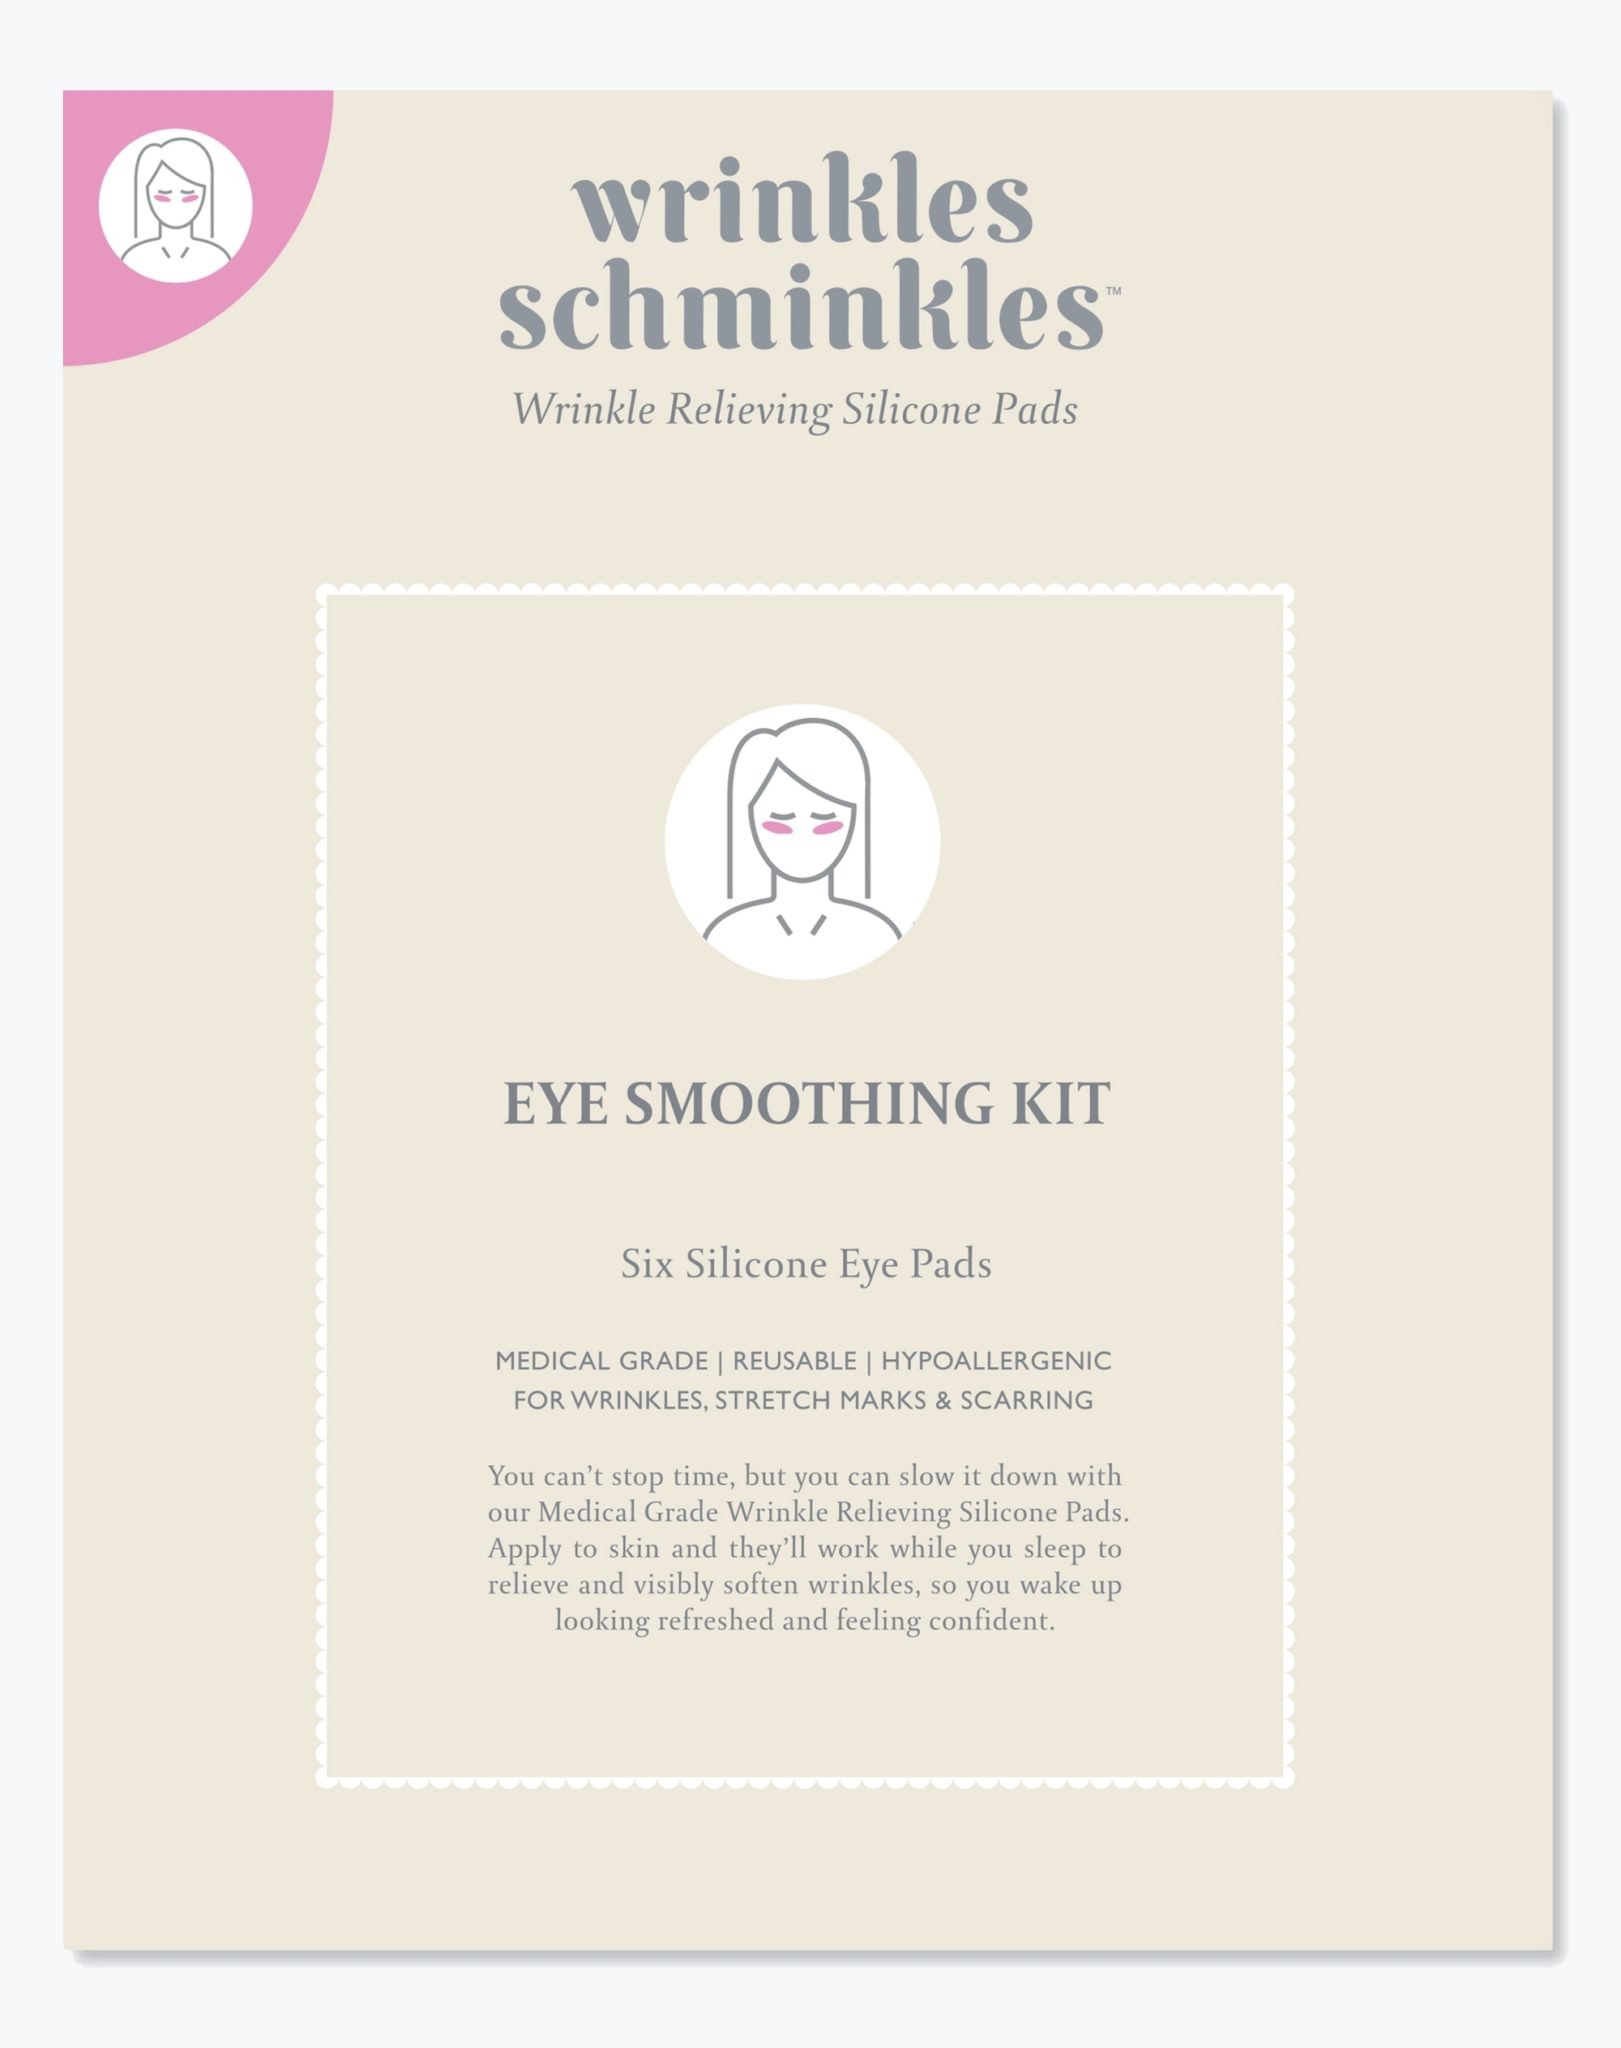 Eye Smoothing Kit - Six Silicone Eye Pads - Wrinkle Schminkle 8